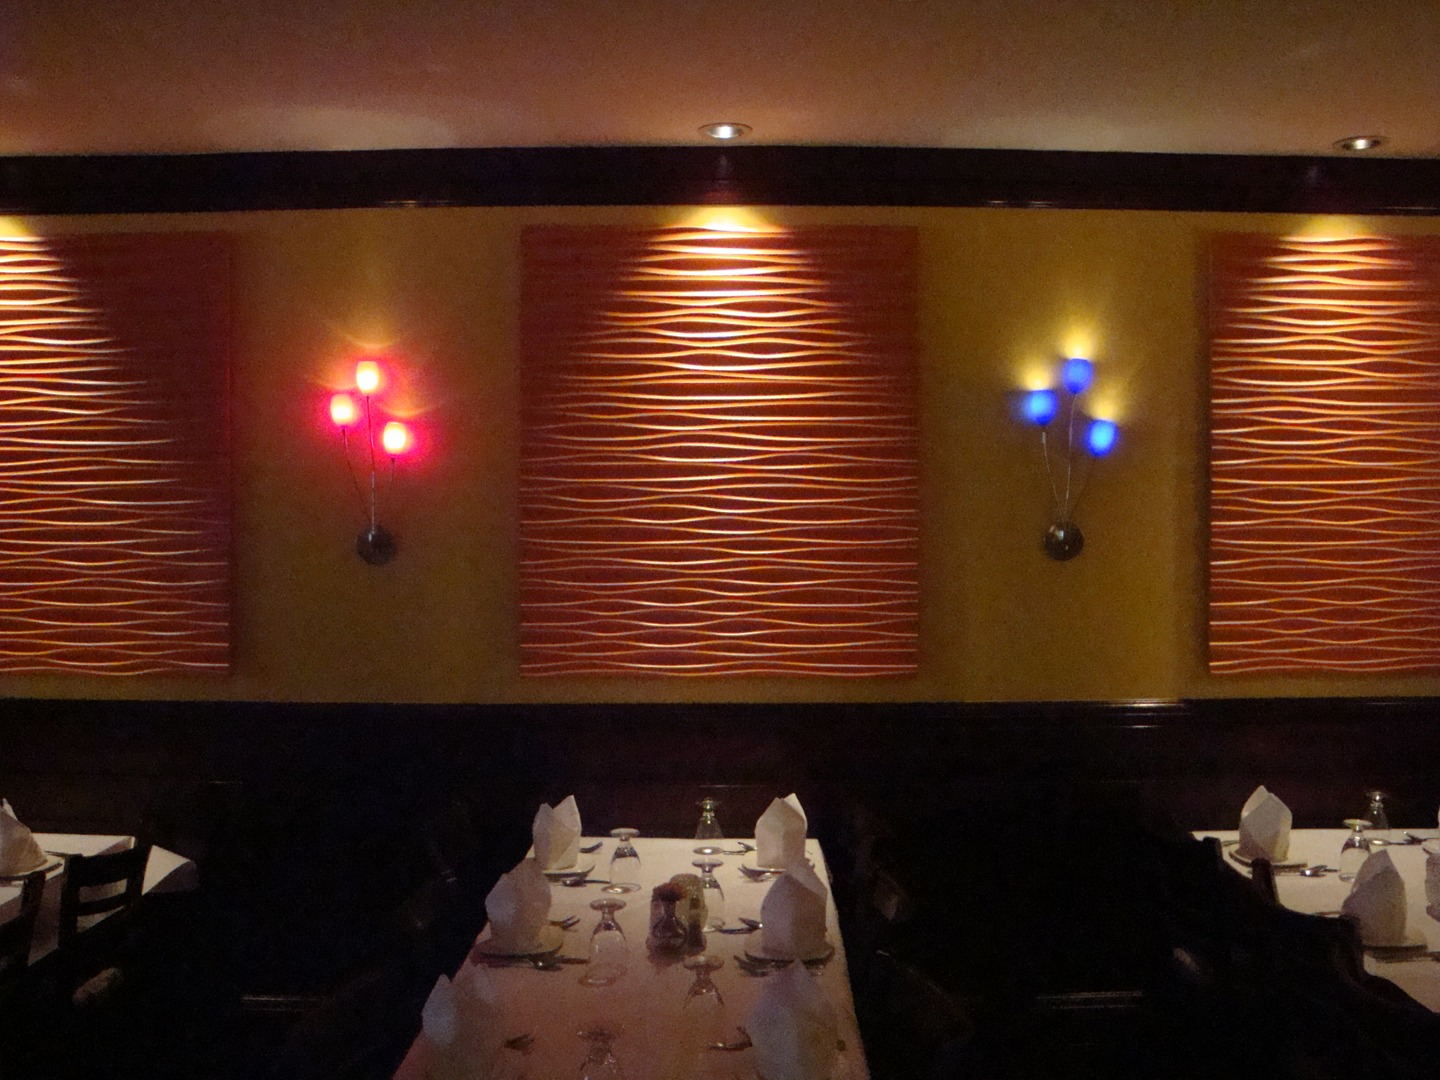 Kitchen design for indian restaurant - Tiffin Chicago Il This Romantic Indian Restaurant Was Designed With Elegance And The Fine Dining Experience In Mind A Large Oval Dome Painted To